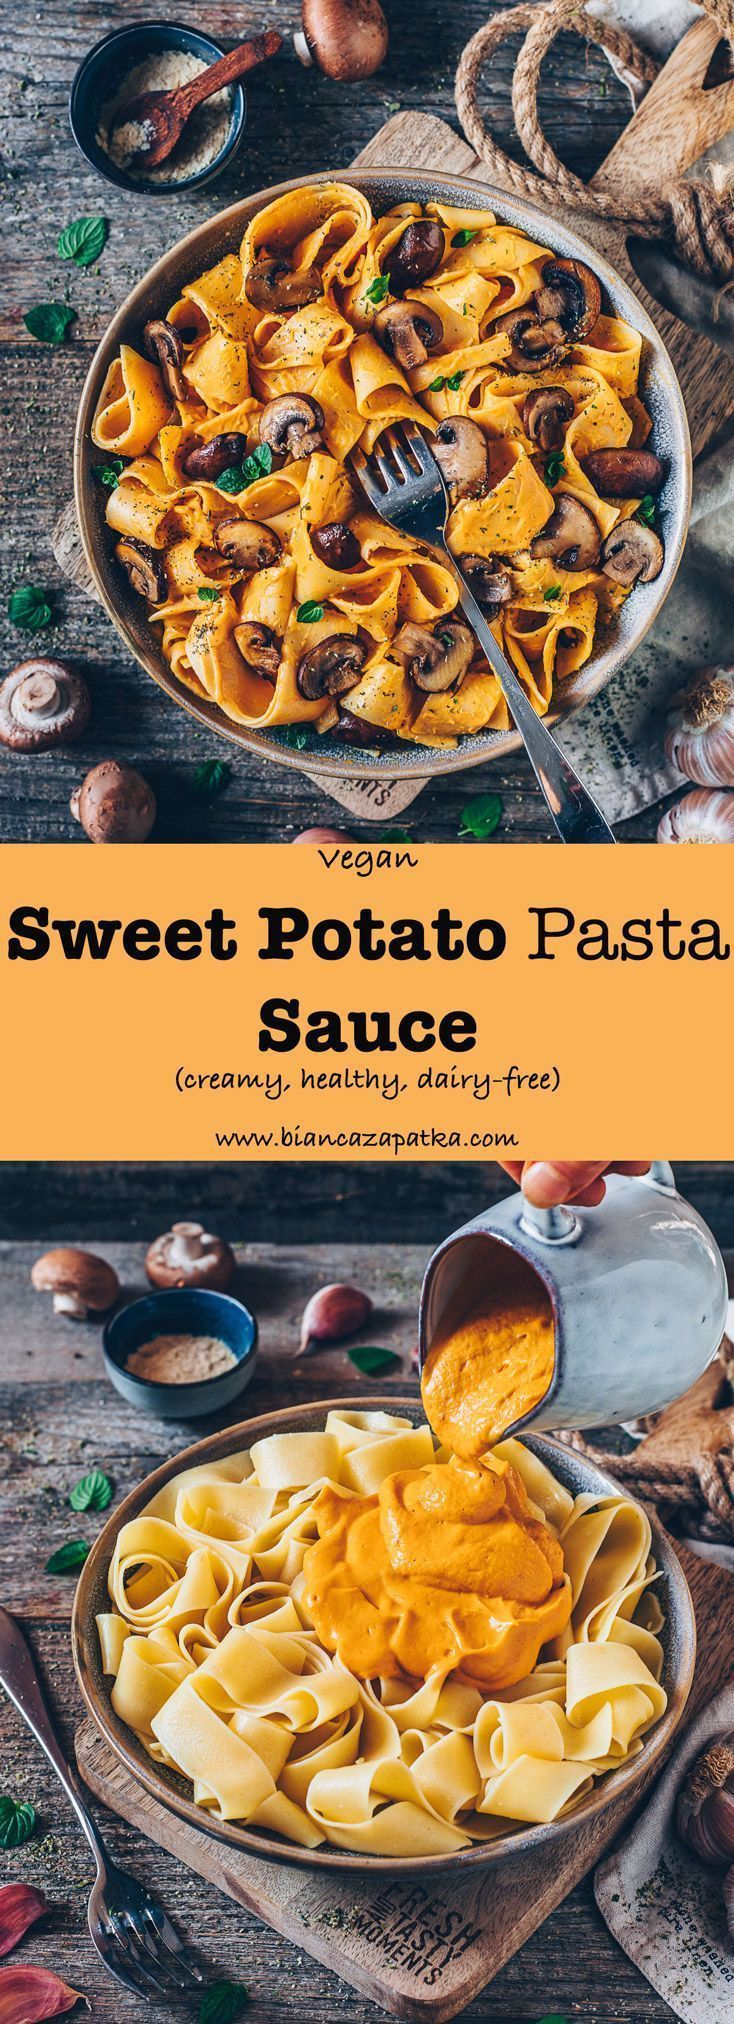 Vegan Sweet Potato Pasta Sauce (creamy, cheesy) #bianca #cheesy #creamy #fitness #fitness ideas #fit...